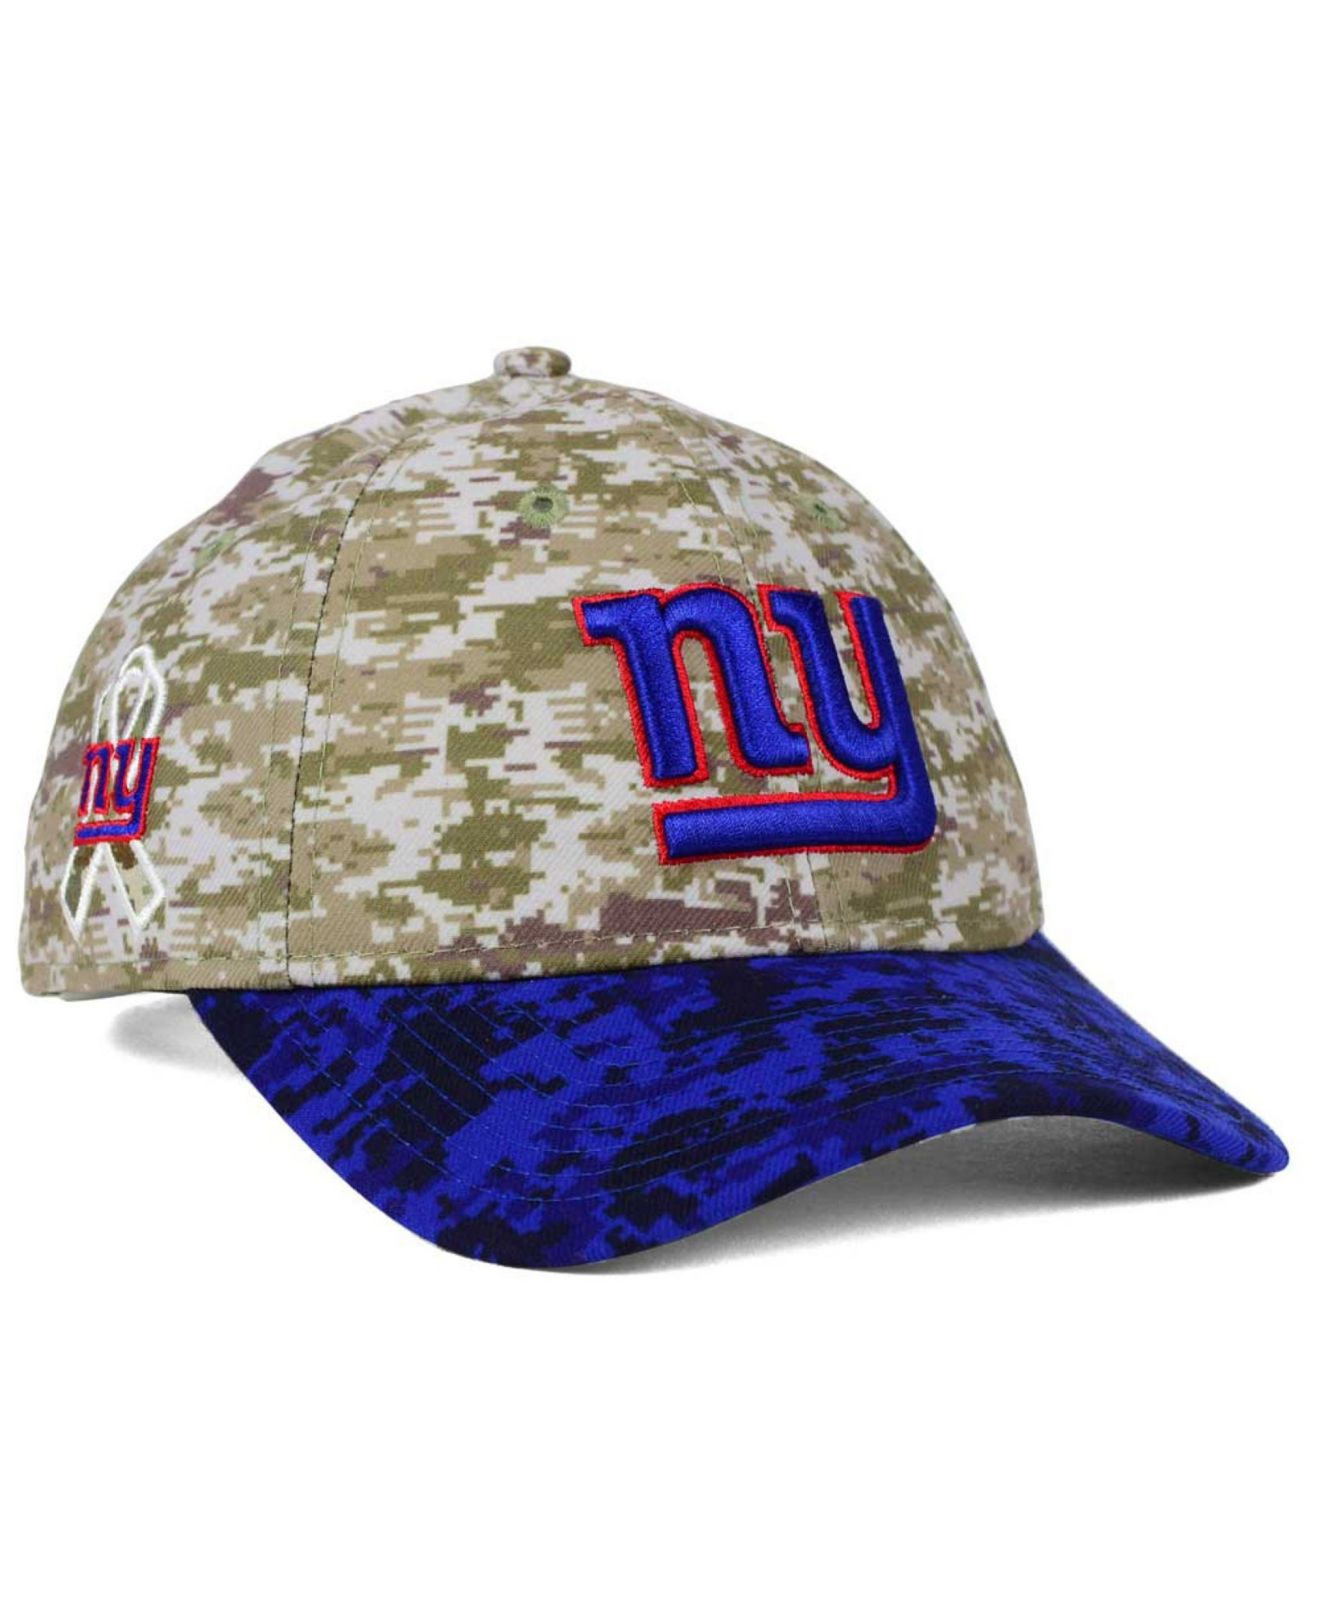 Lyst - KTZ Women s New York Giants Salute To Service 9twenty Cap in ... 9789dff02ddd